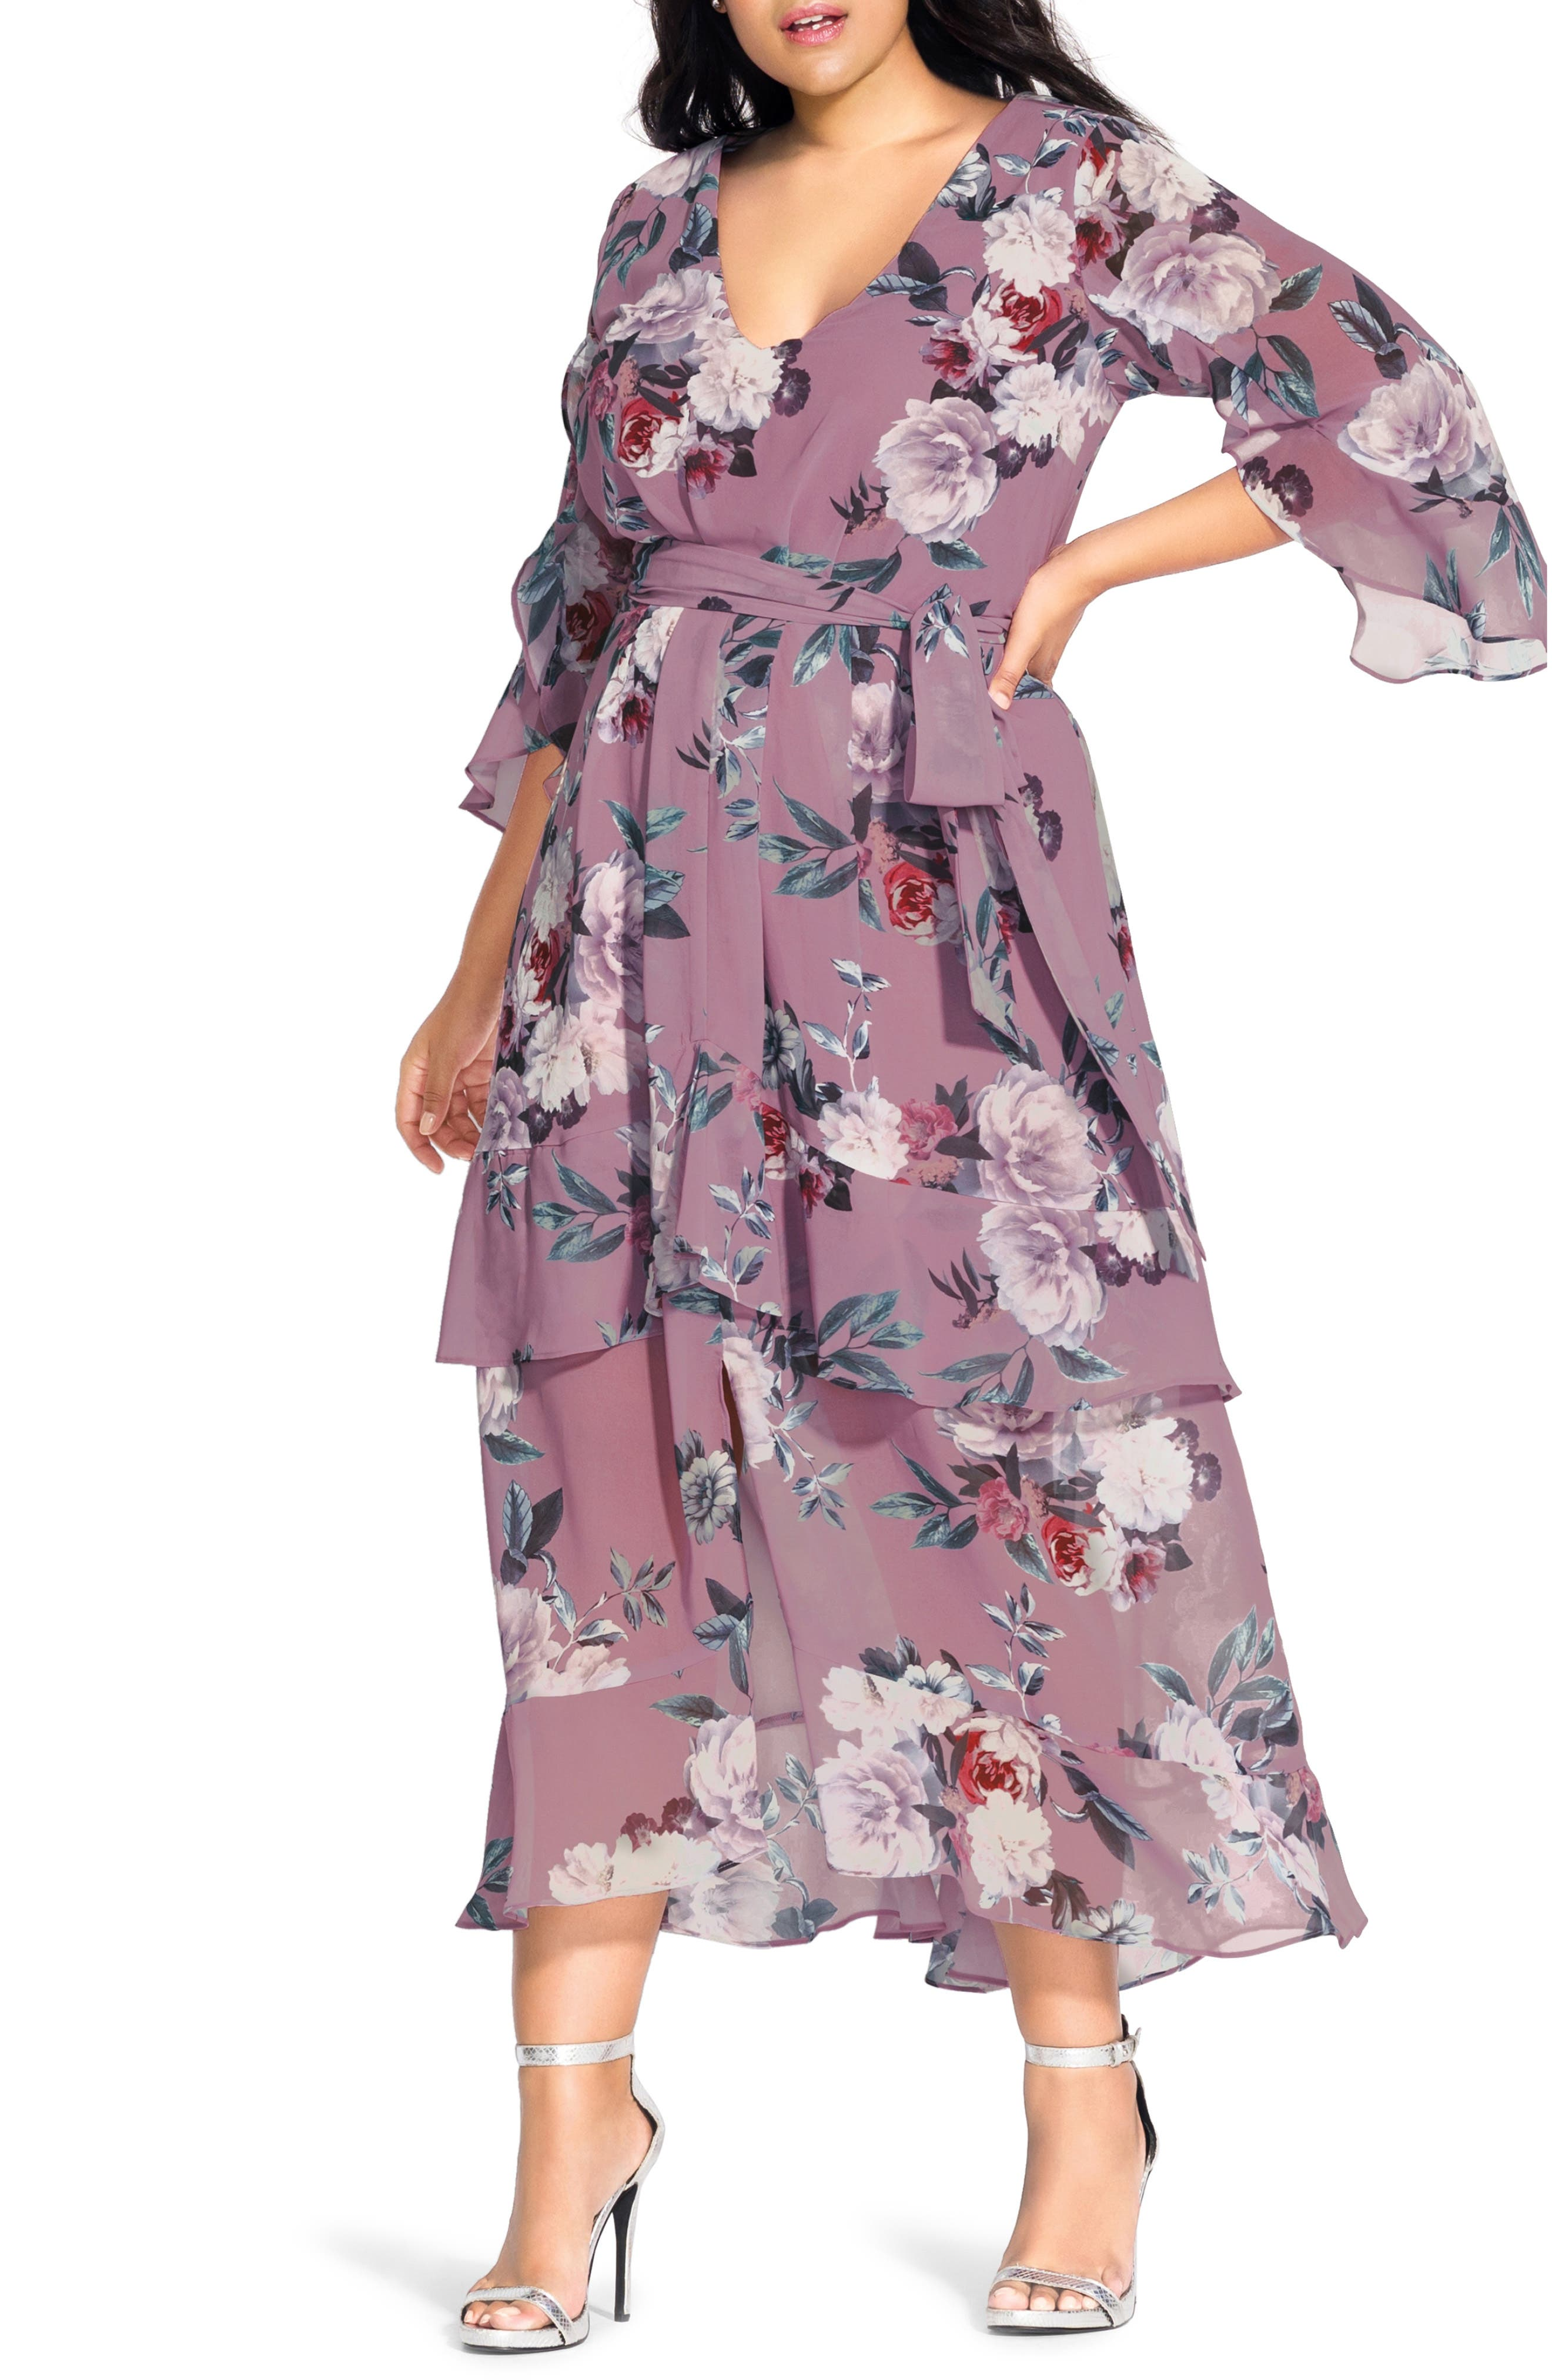 60s 70s Plus Size Dresses, Clothing, Costumes Plus Size Womens City Chic Rosewater Floral Chiffon Maxi Dress $64.50 AT vintagedancer.com